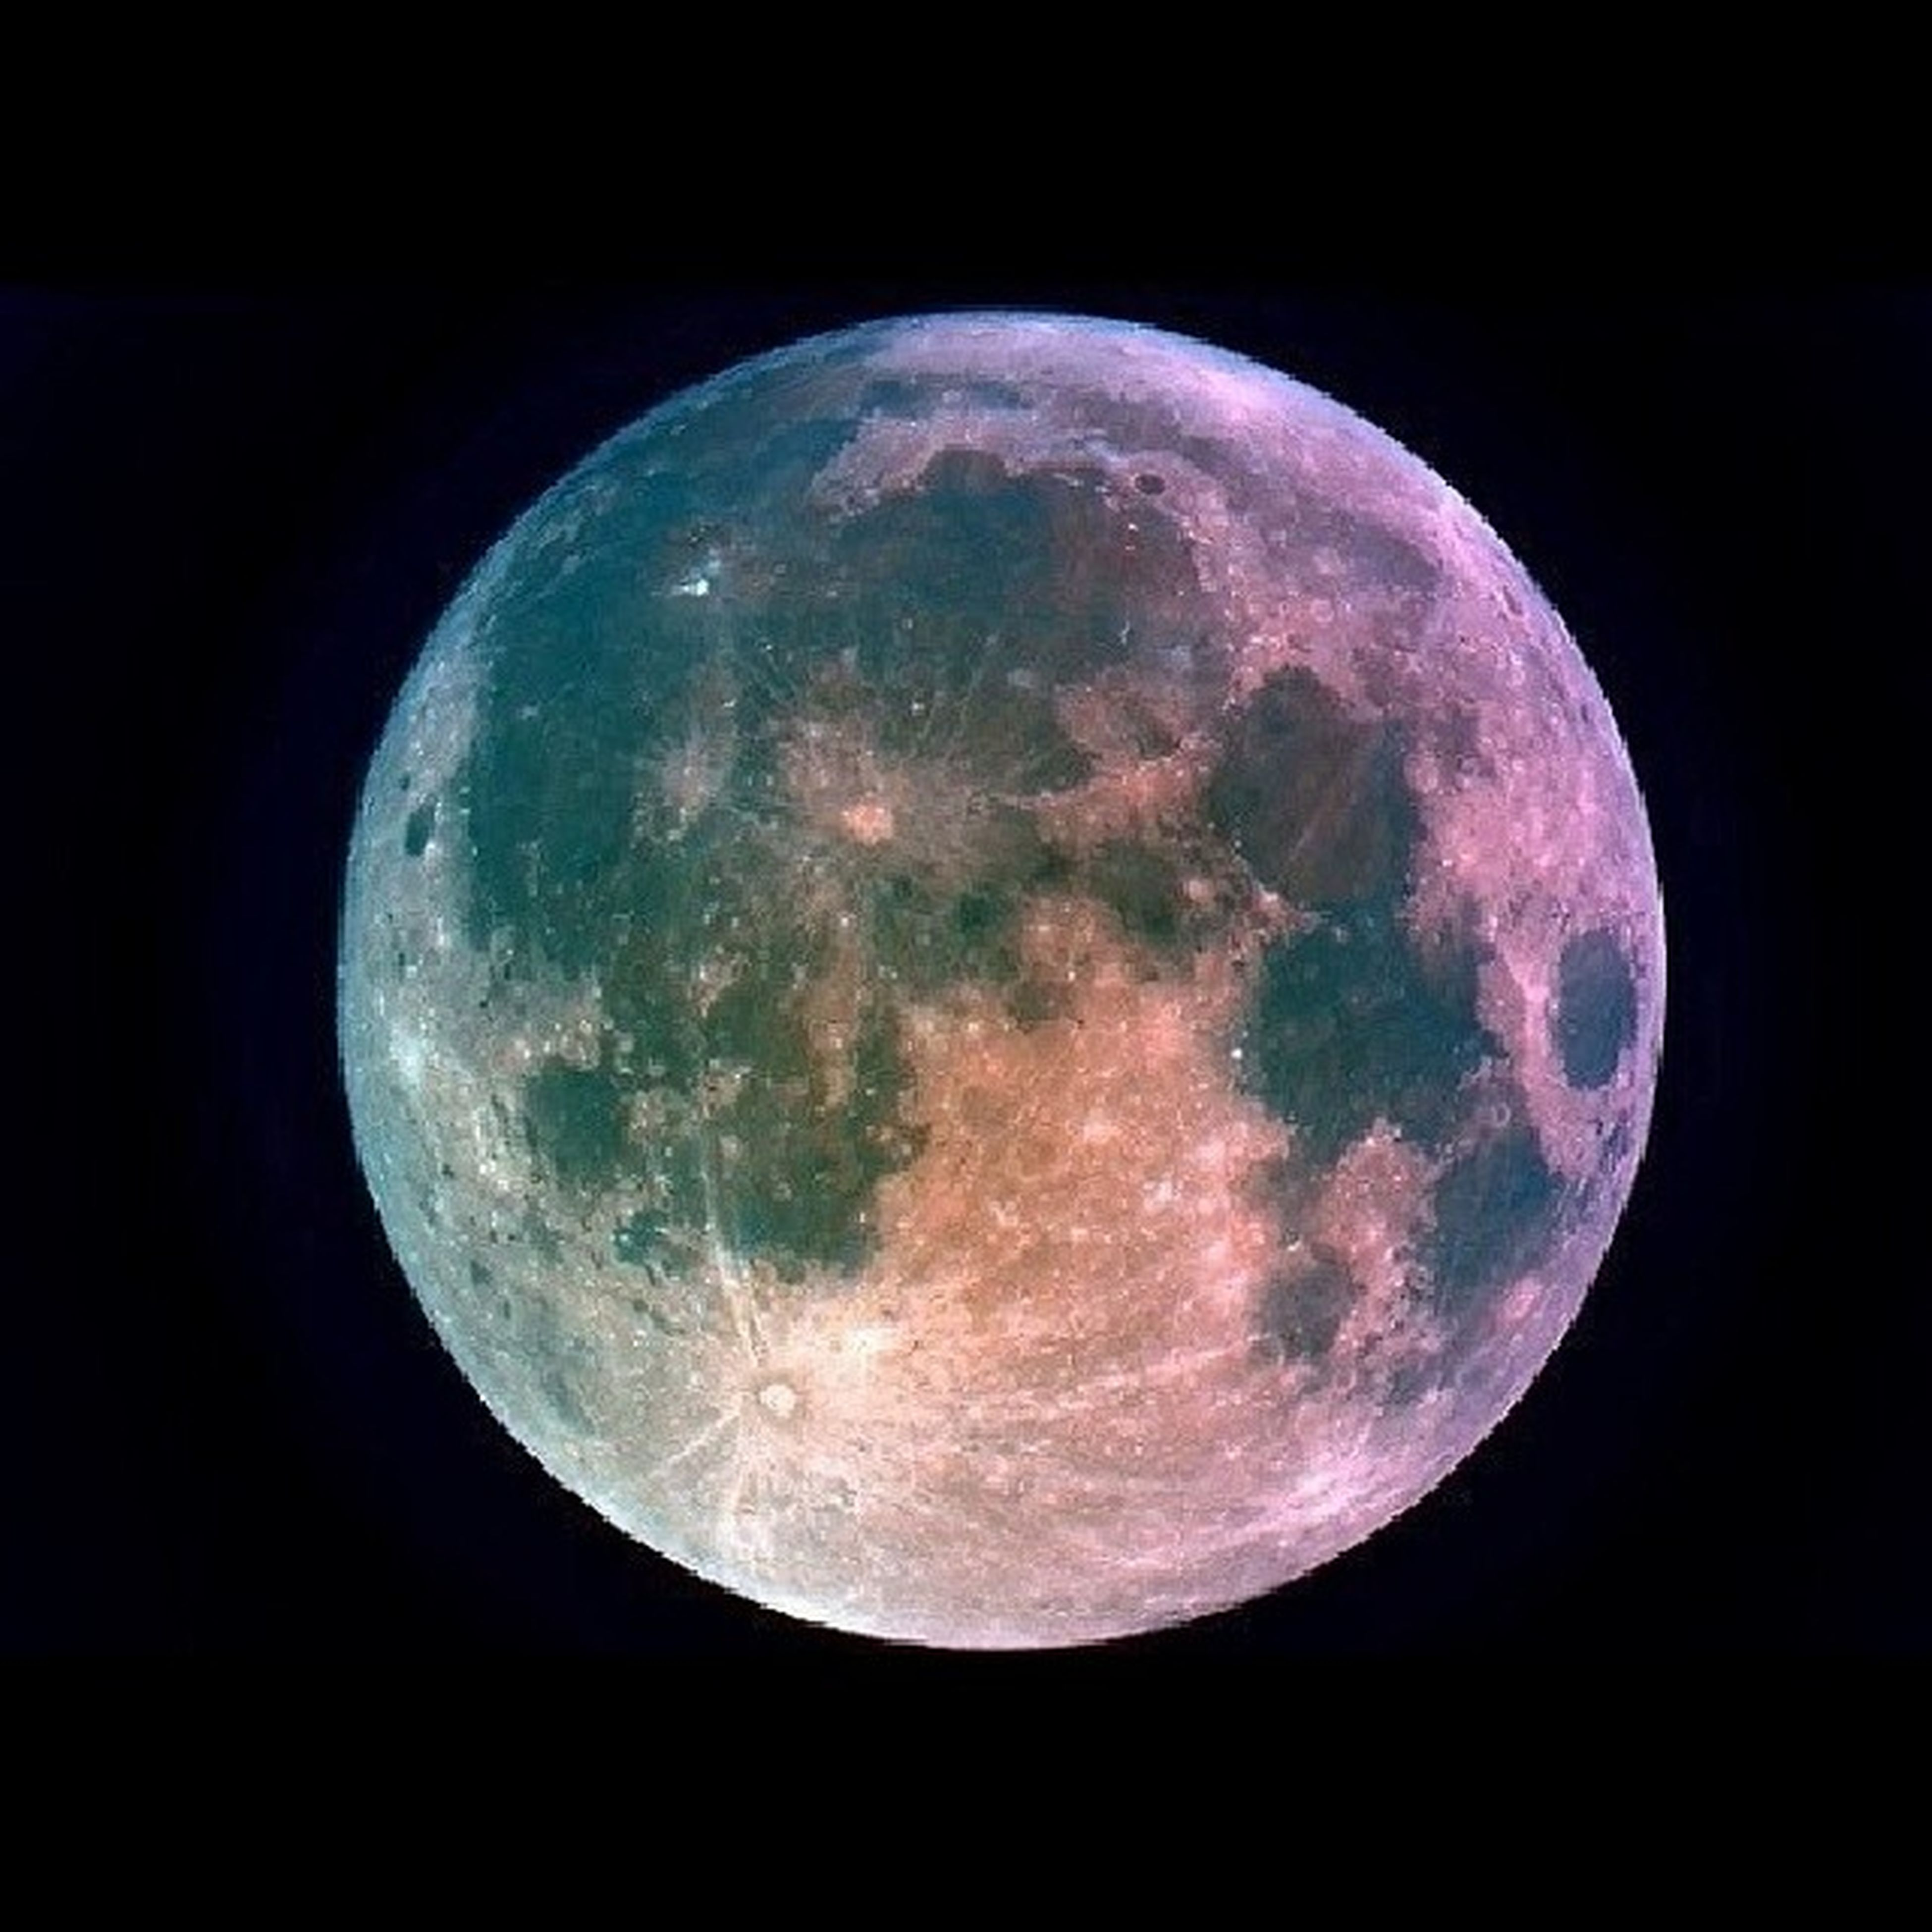 astronomy, moon, night, planetary moon, circle, full moon, moon surface, space exploration, discovery, sphere, sky, low angle view, beauty in nature, scenics, tranquil scene, tranquility, exploration, nature, majestic, space